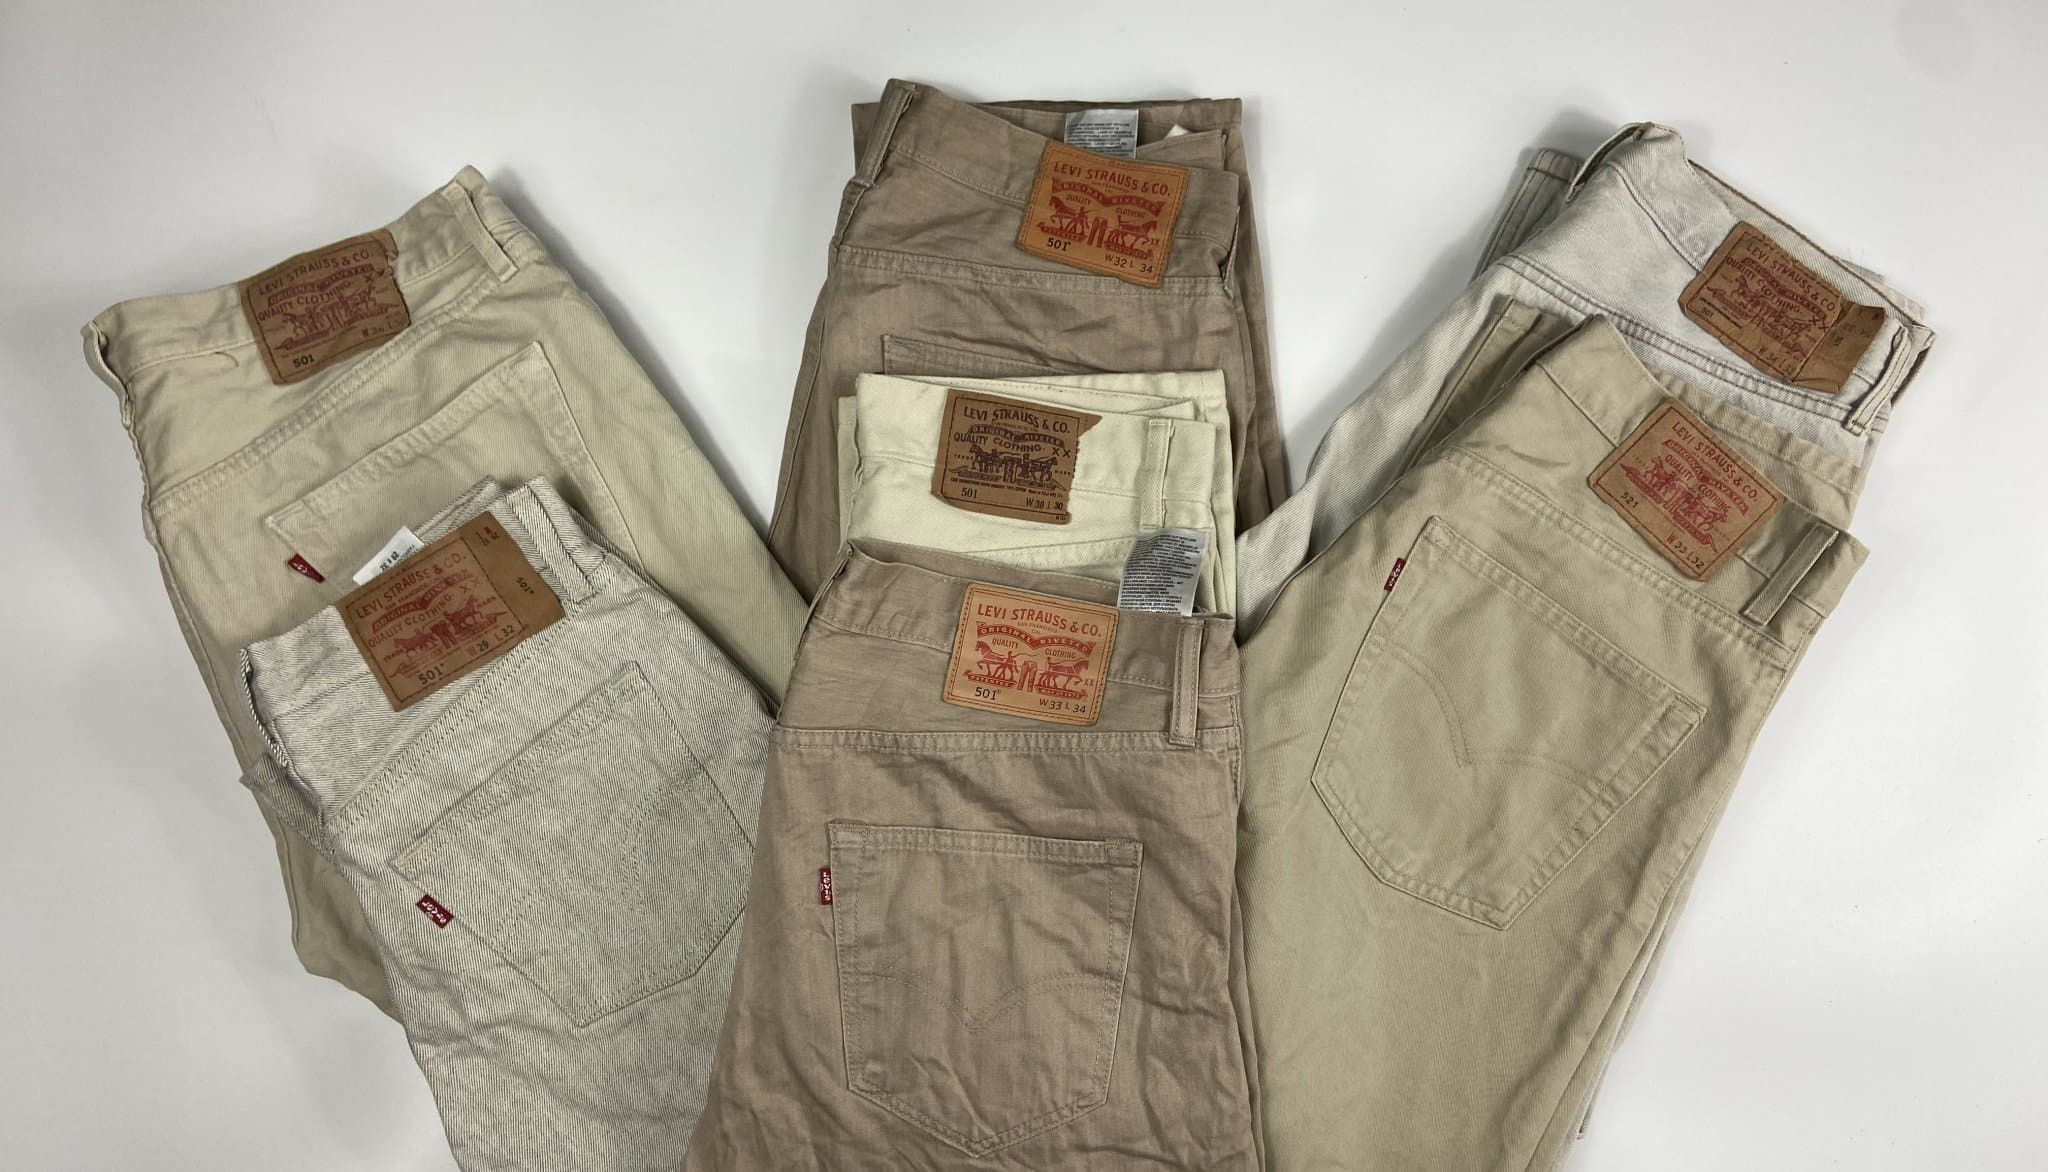 Vintage Levi's Classic Beige/Cream 501 Jeans W36 L32 (BE1) - Discounted Deals UK